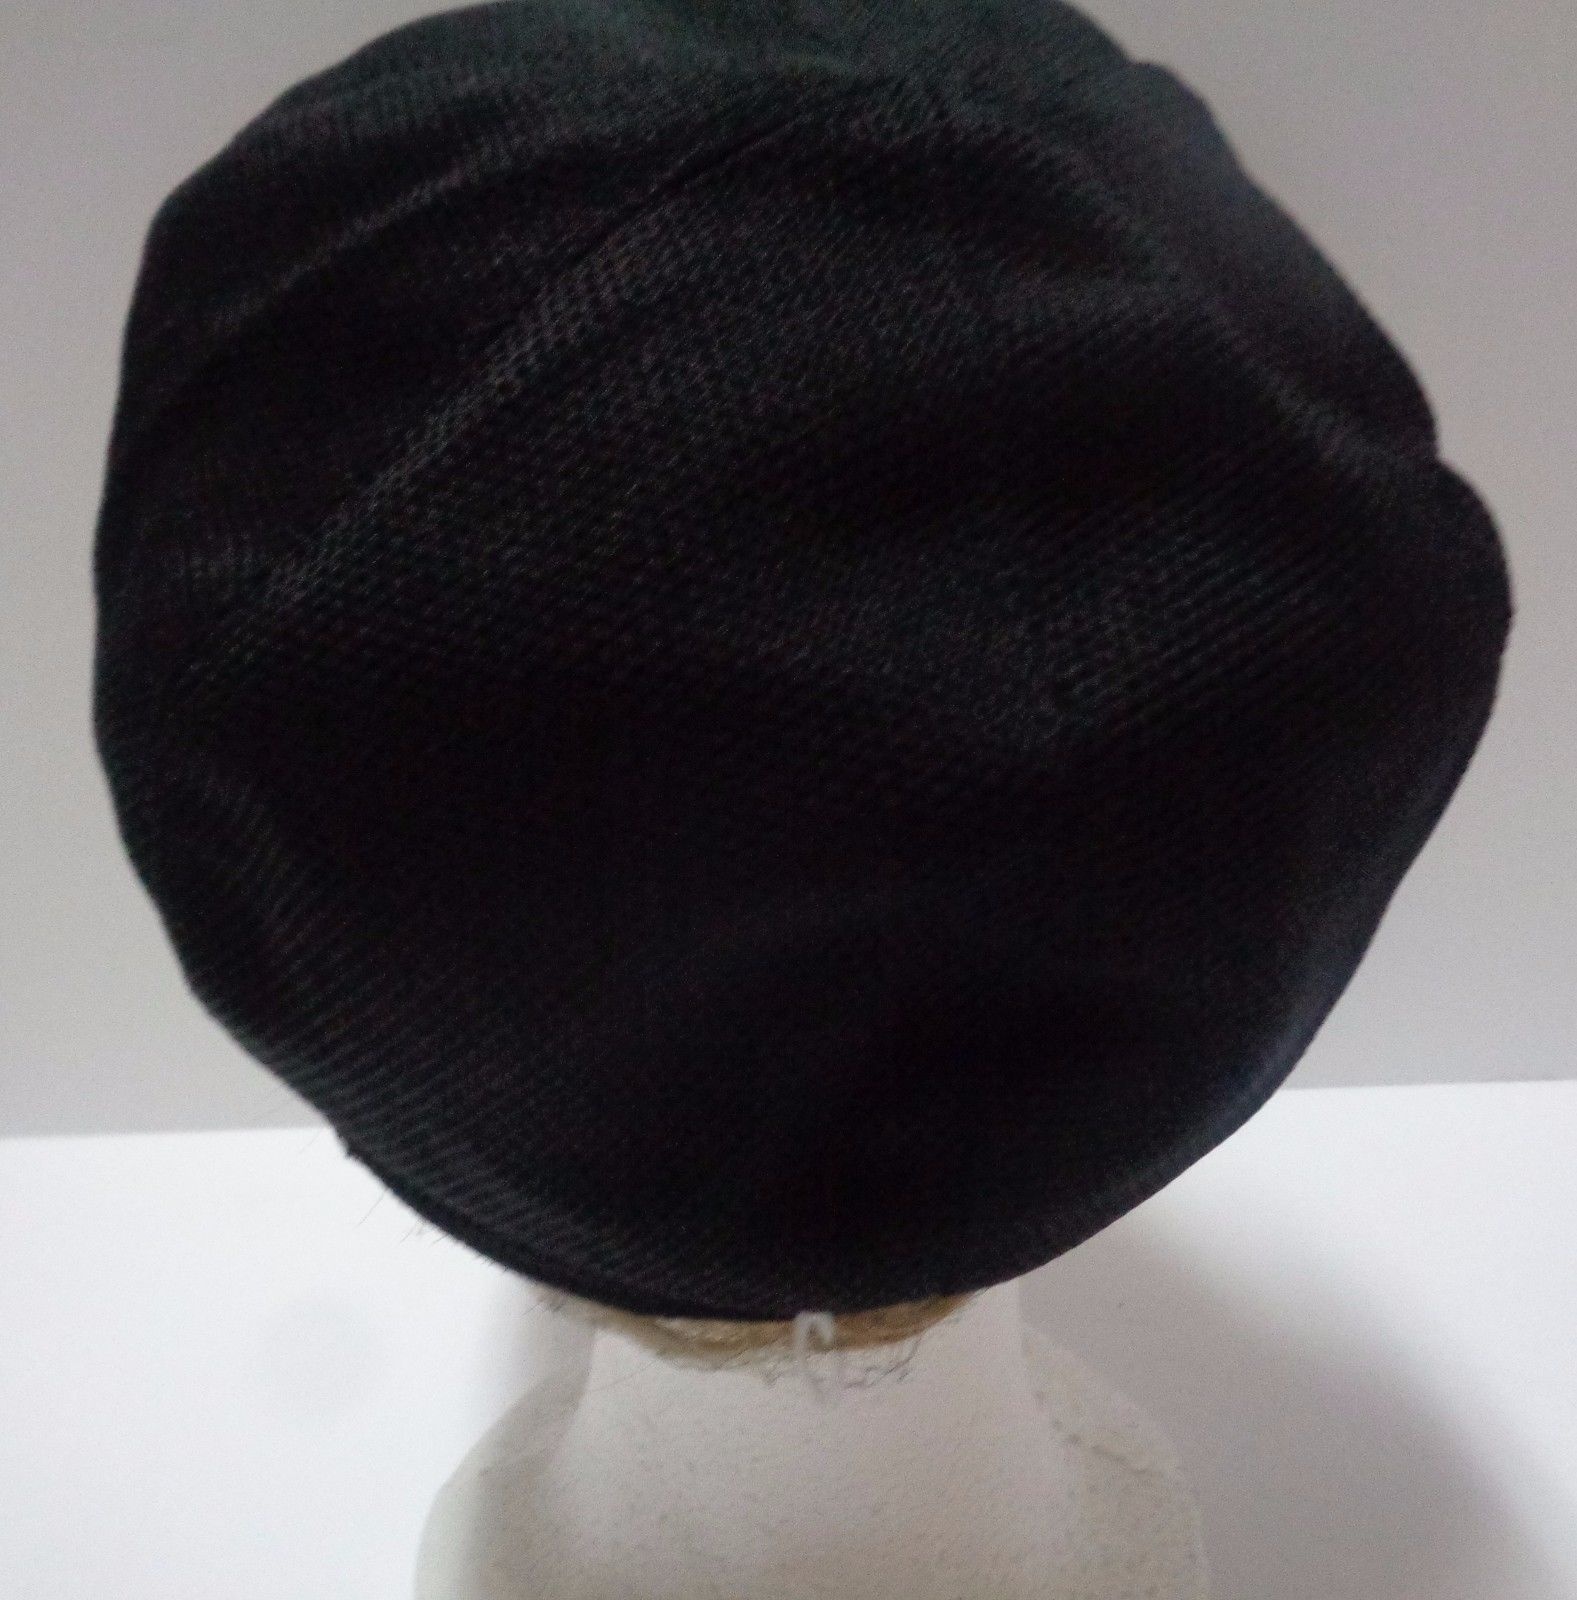 SHYC FASHION Yacht Cap Hat Black NEW Adult SZ Butterfly & Bow Accent